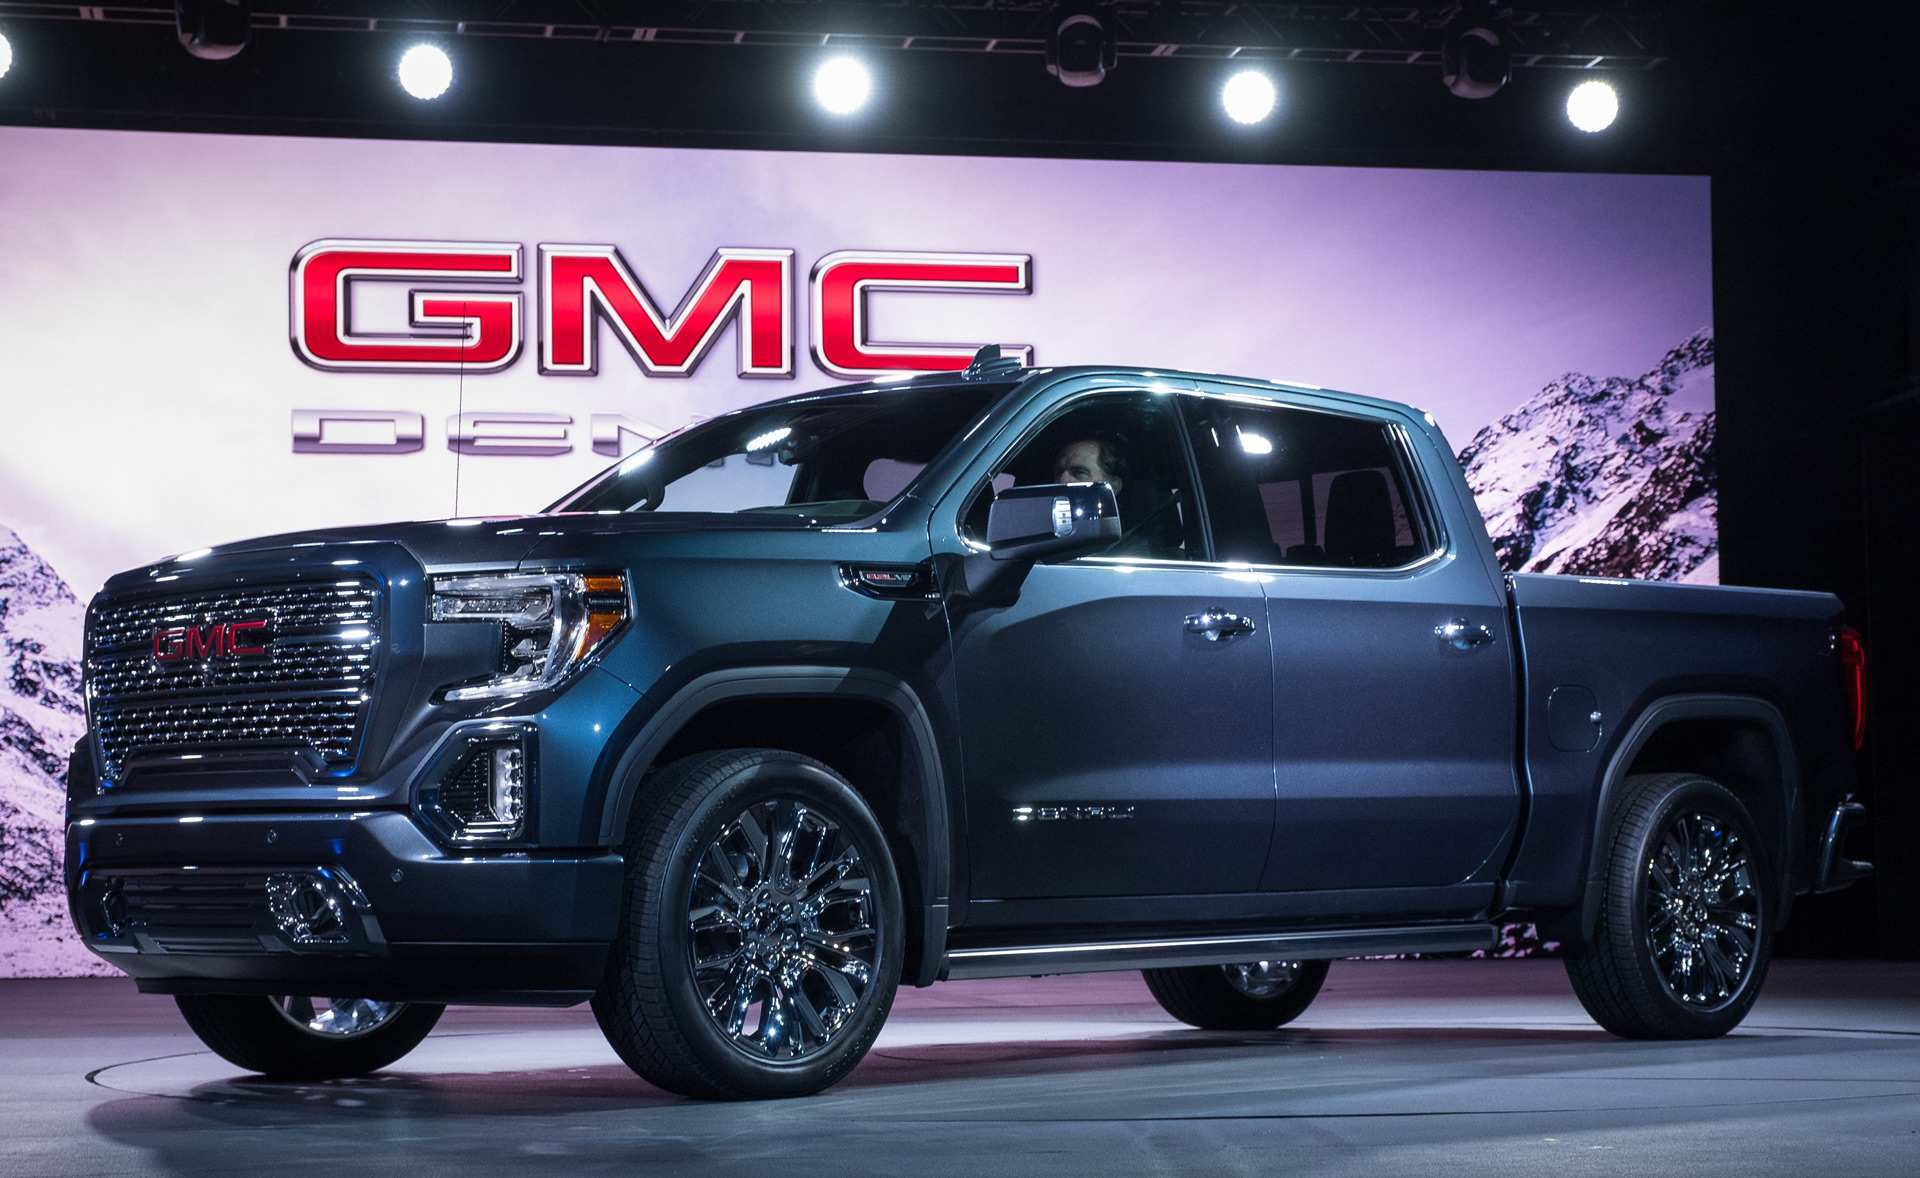 87 Best Review New 2019 Gmc Sierra Vs Silverado Review Specs And Release Date Release Date by New 2019 Gmc Sierra Vs Silverado Review Specs And Release Date